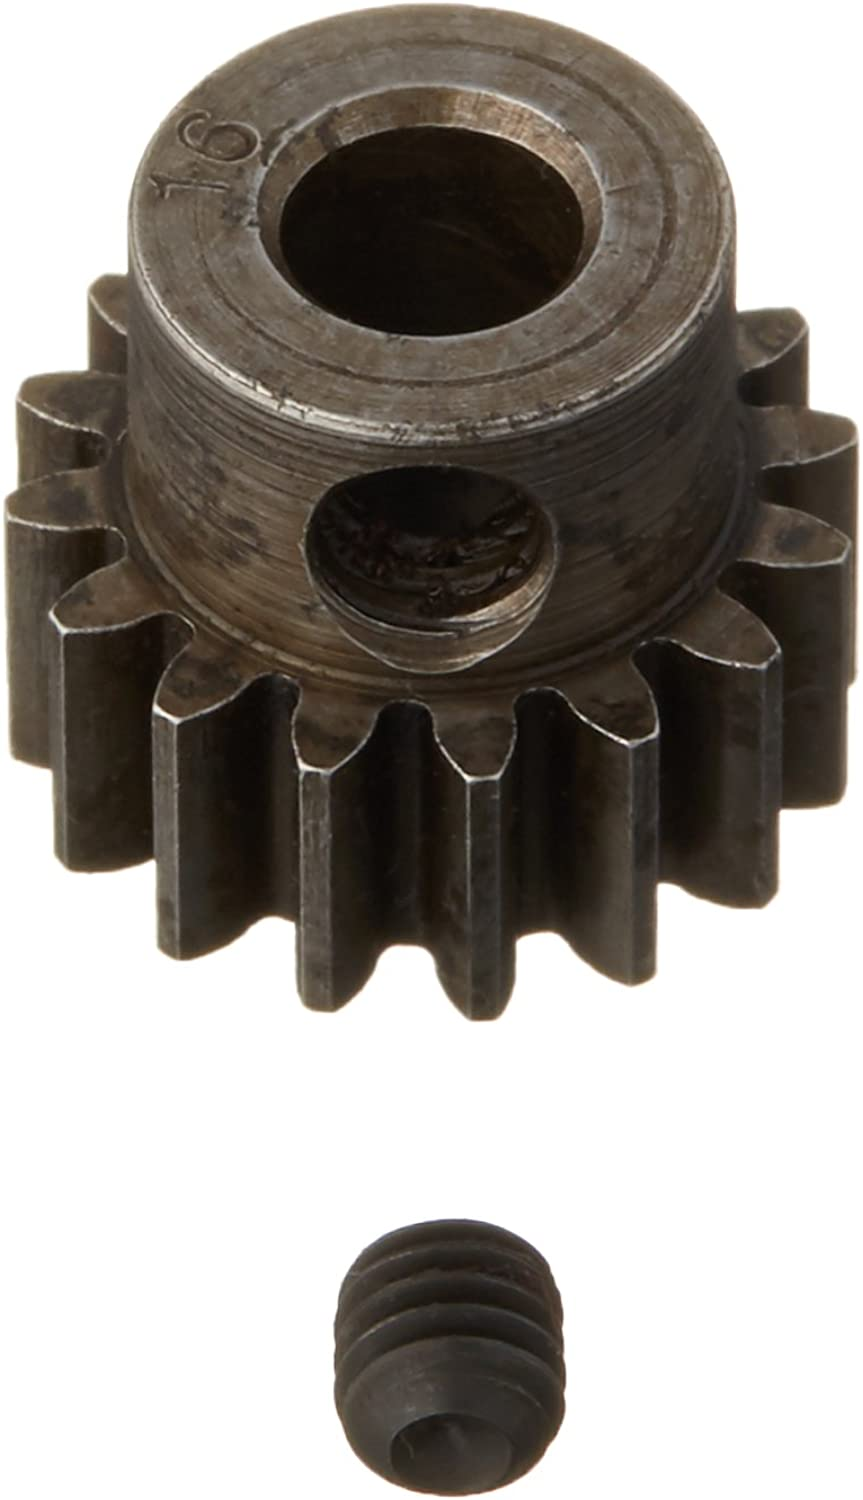 Robinson Racing 8716 Pinion Gear Xtra Hard 5mm 8 Mod 16T, 8716